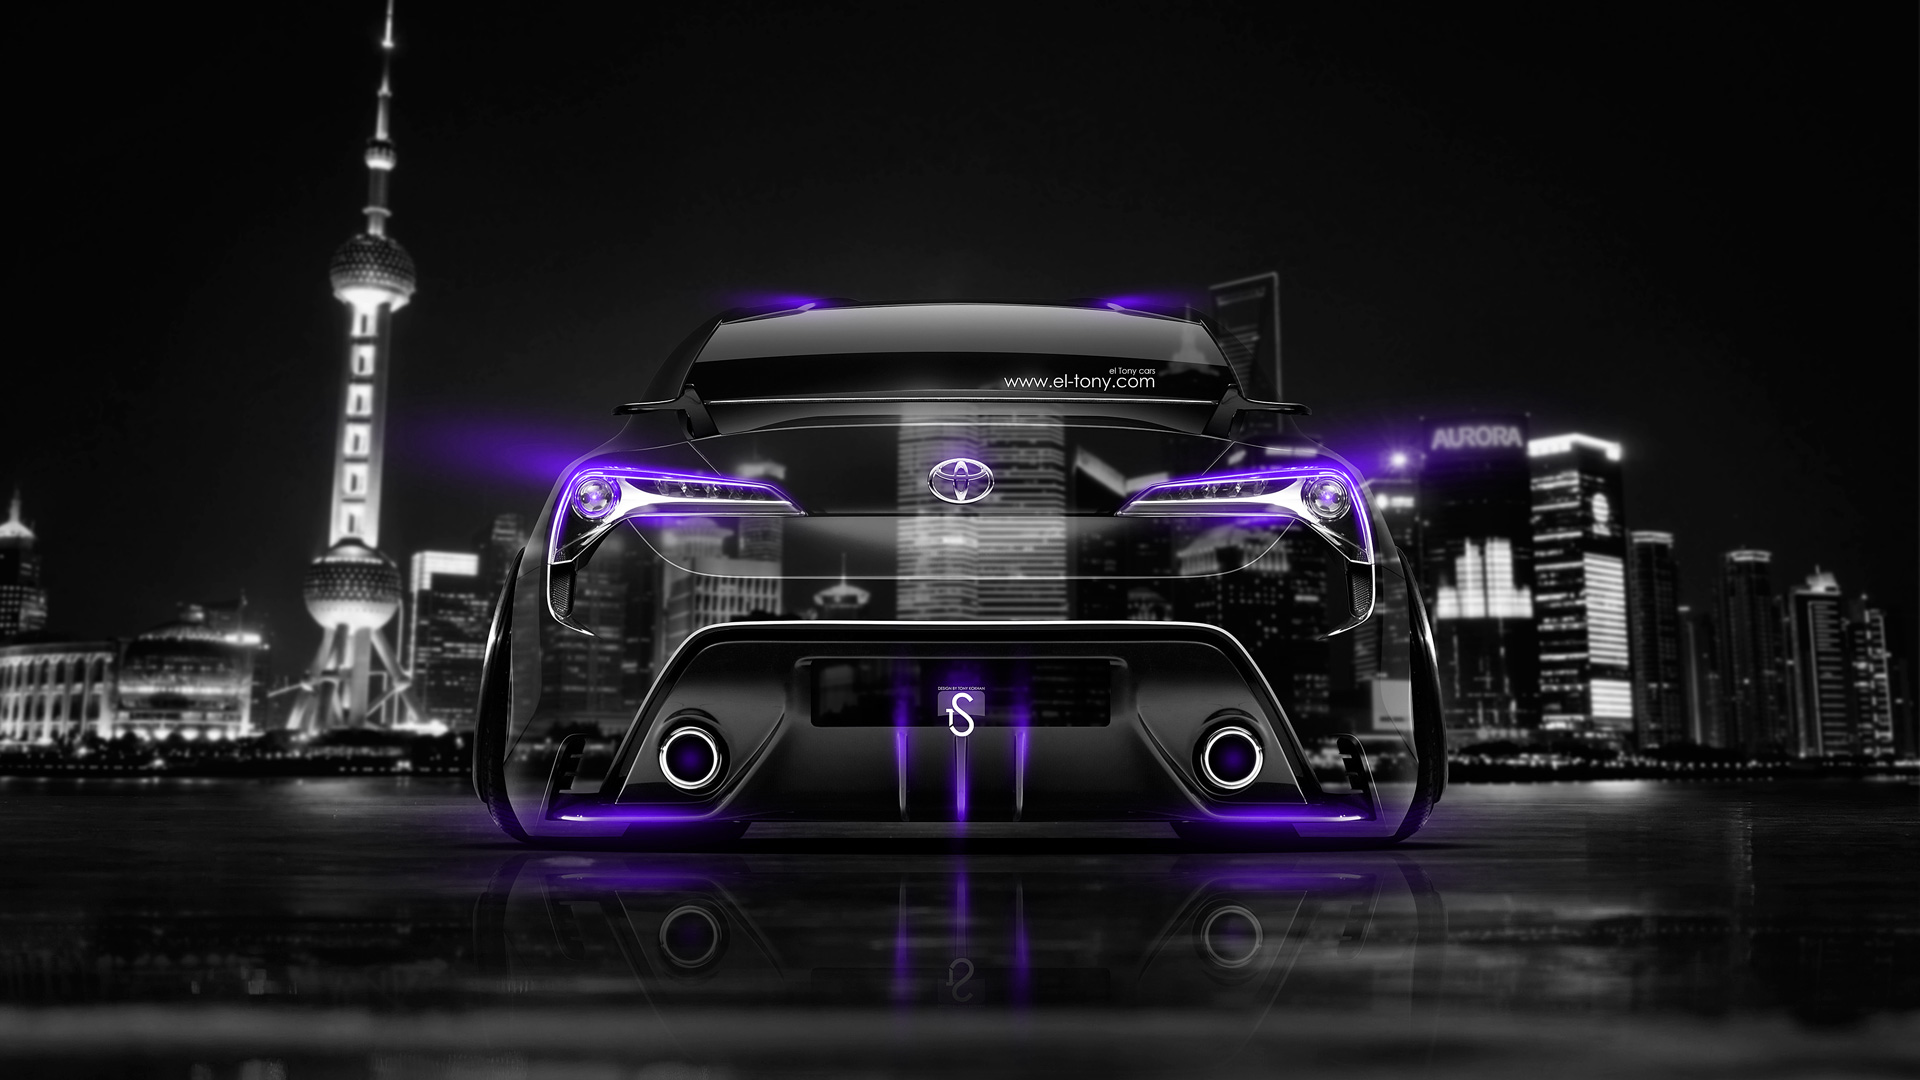 Toyota-FT-86-Back-Crystal-City-Car-2014-Violet-Neon-HD-Wallpapers-design-by-Tony-Kokhan-[www.el-tony.com]